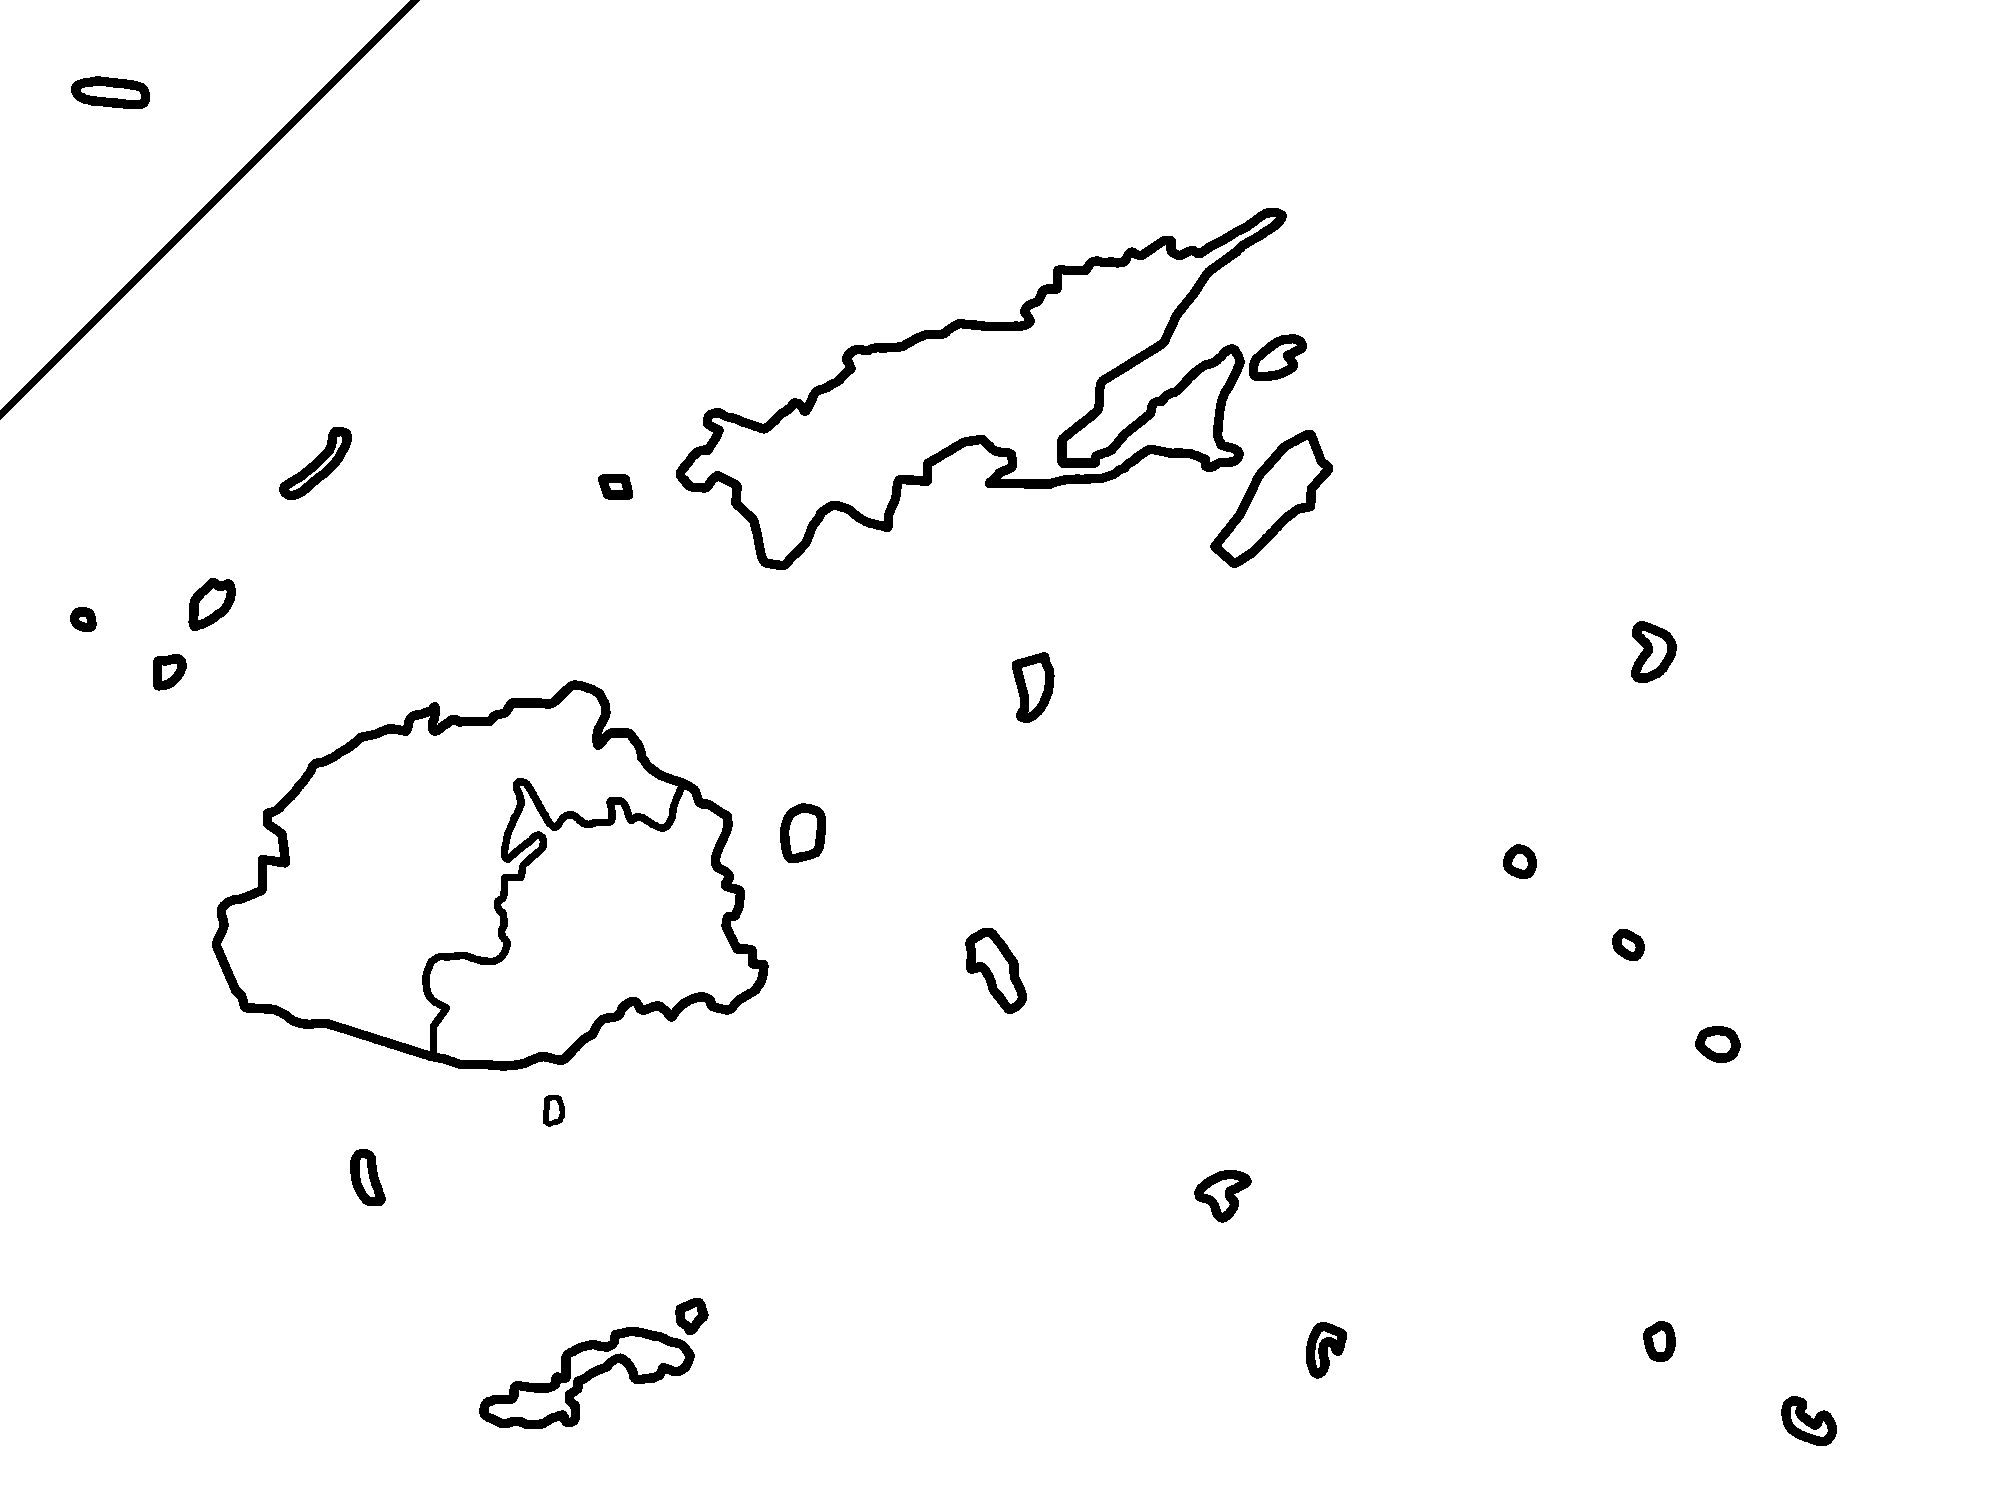 File:Fiji divisions blank.png - Wikimedia Commons